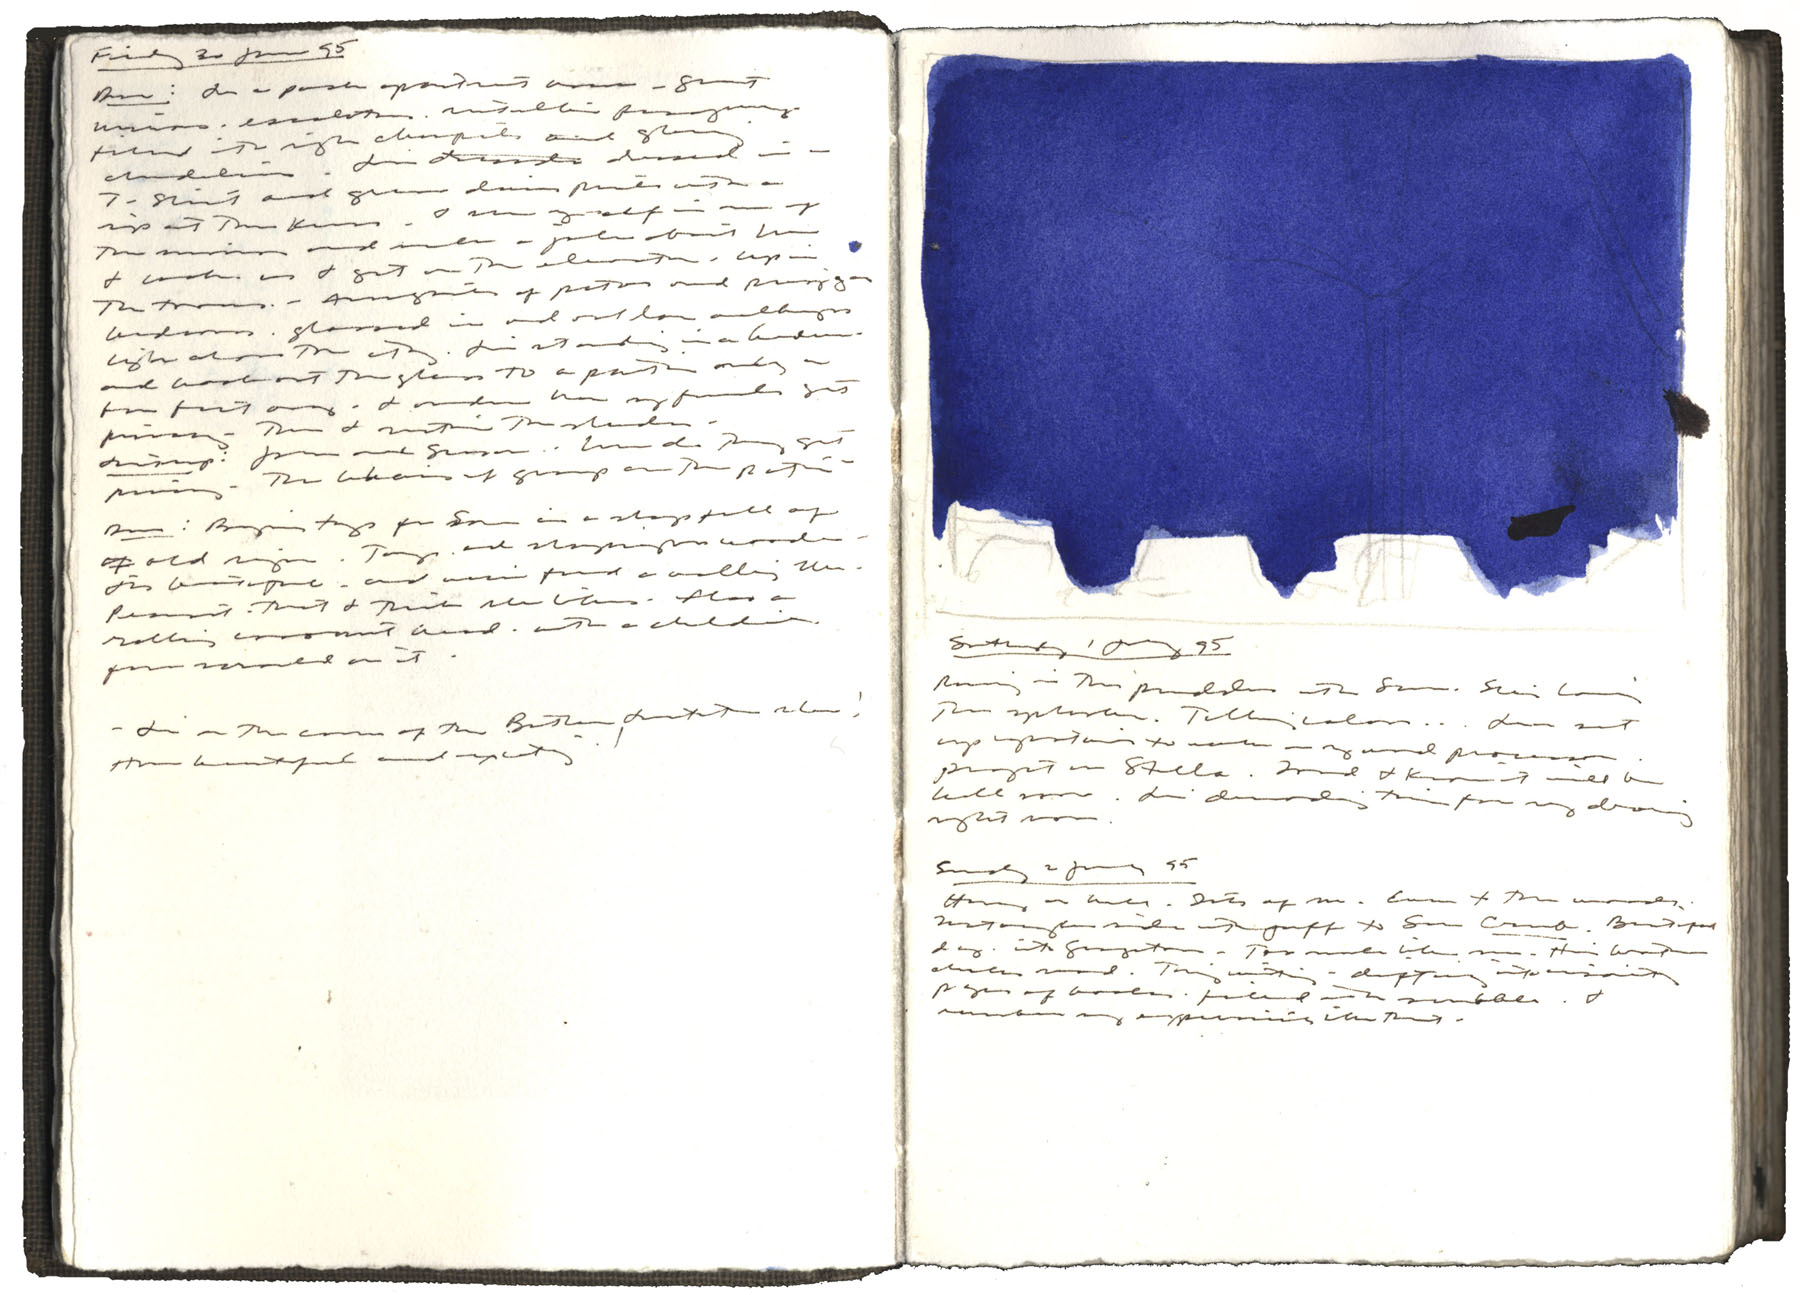 Study for blue twilight, 1 july 1995, watercolor, graphite, and pen and ink on arches paper in bound volume